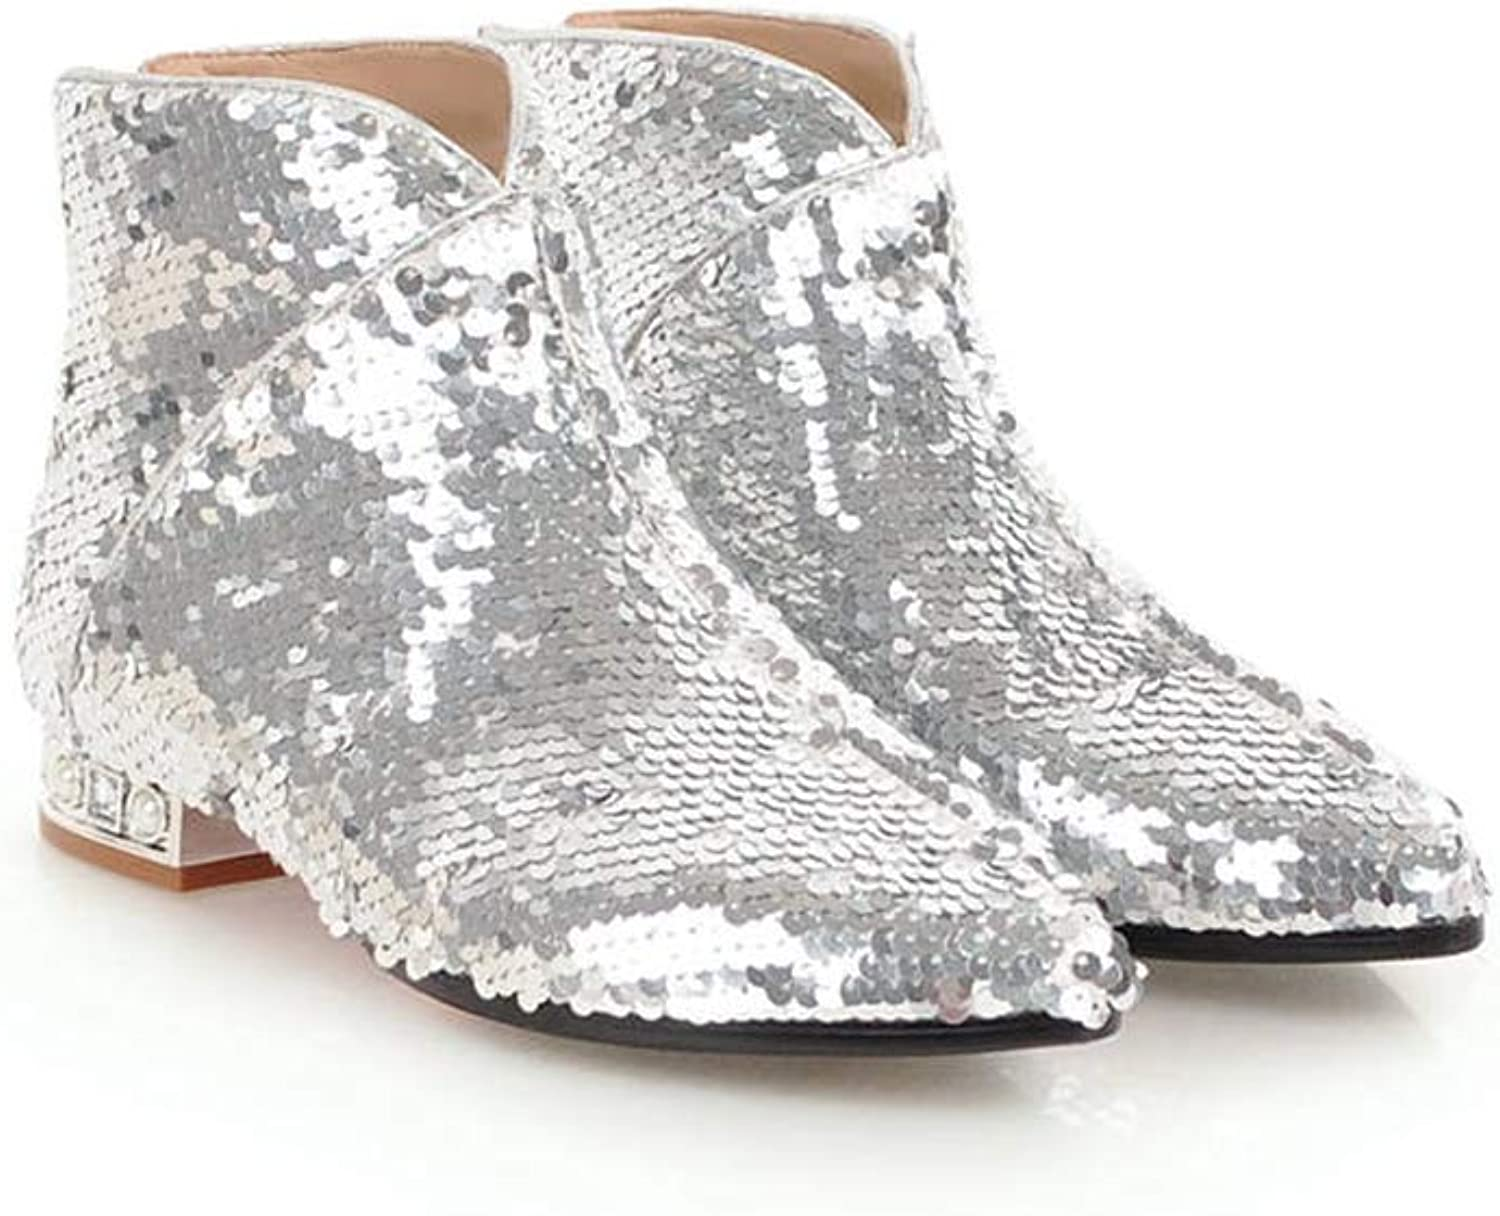 T-JULY Women Sequined Cloth Ankle Boots Fashion Pointed Toe Square Heels shoes Woman Fashion Autumn Winter Boots